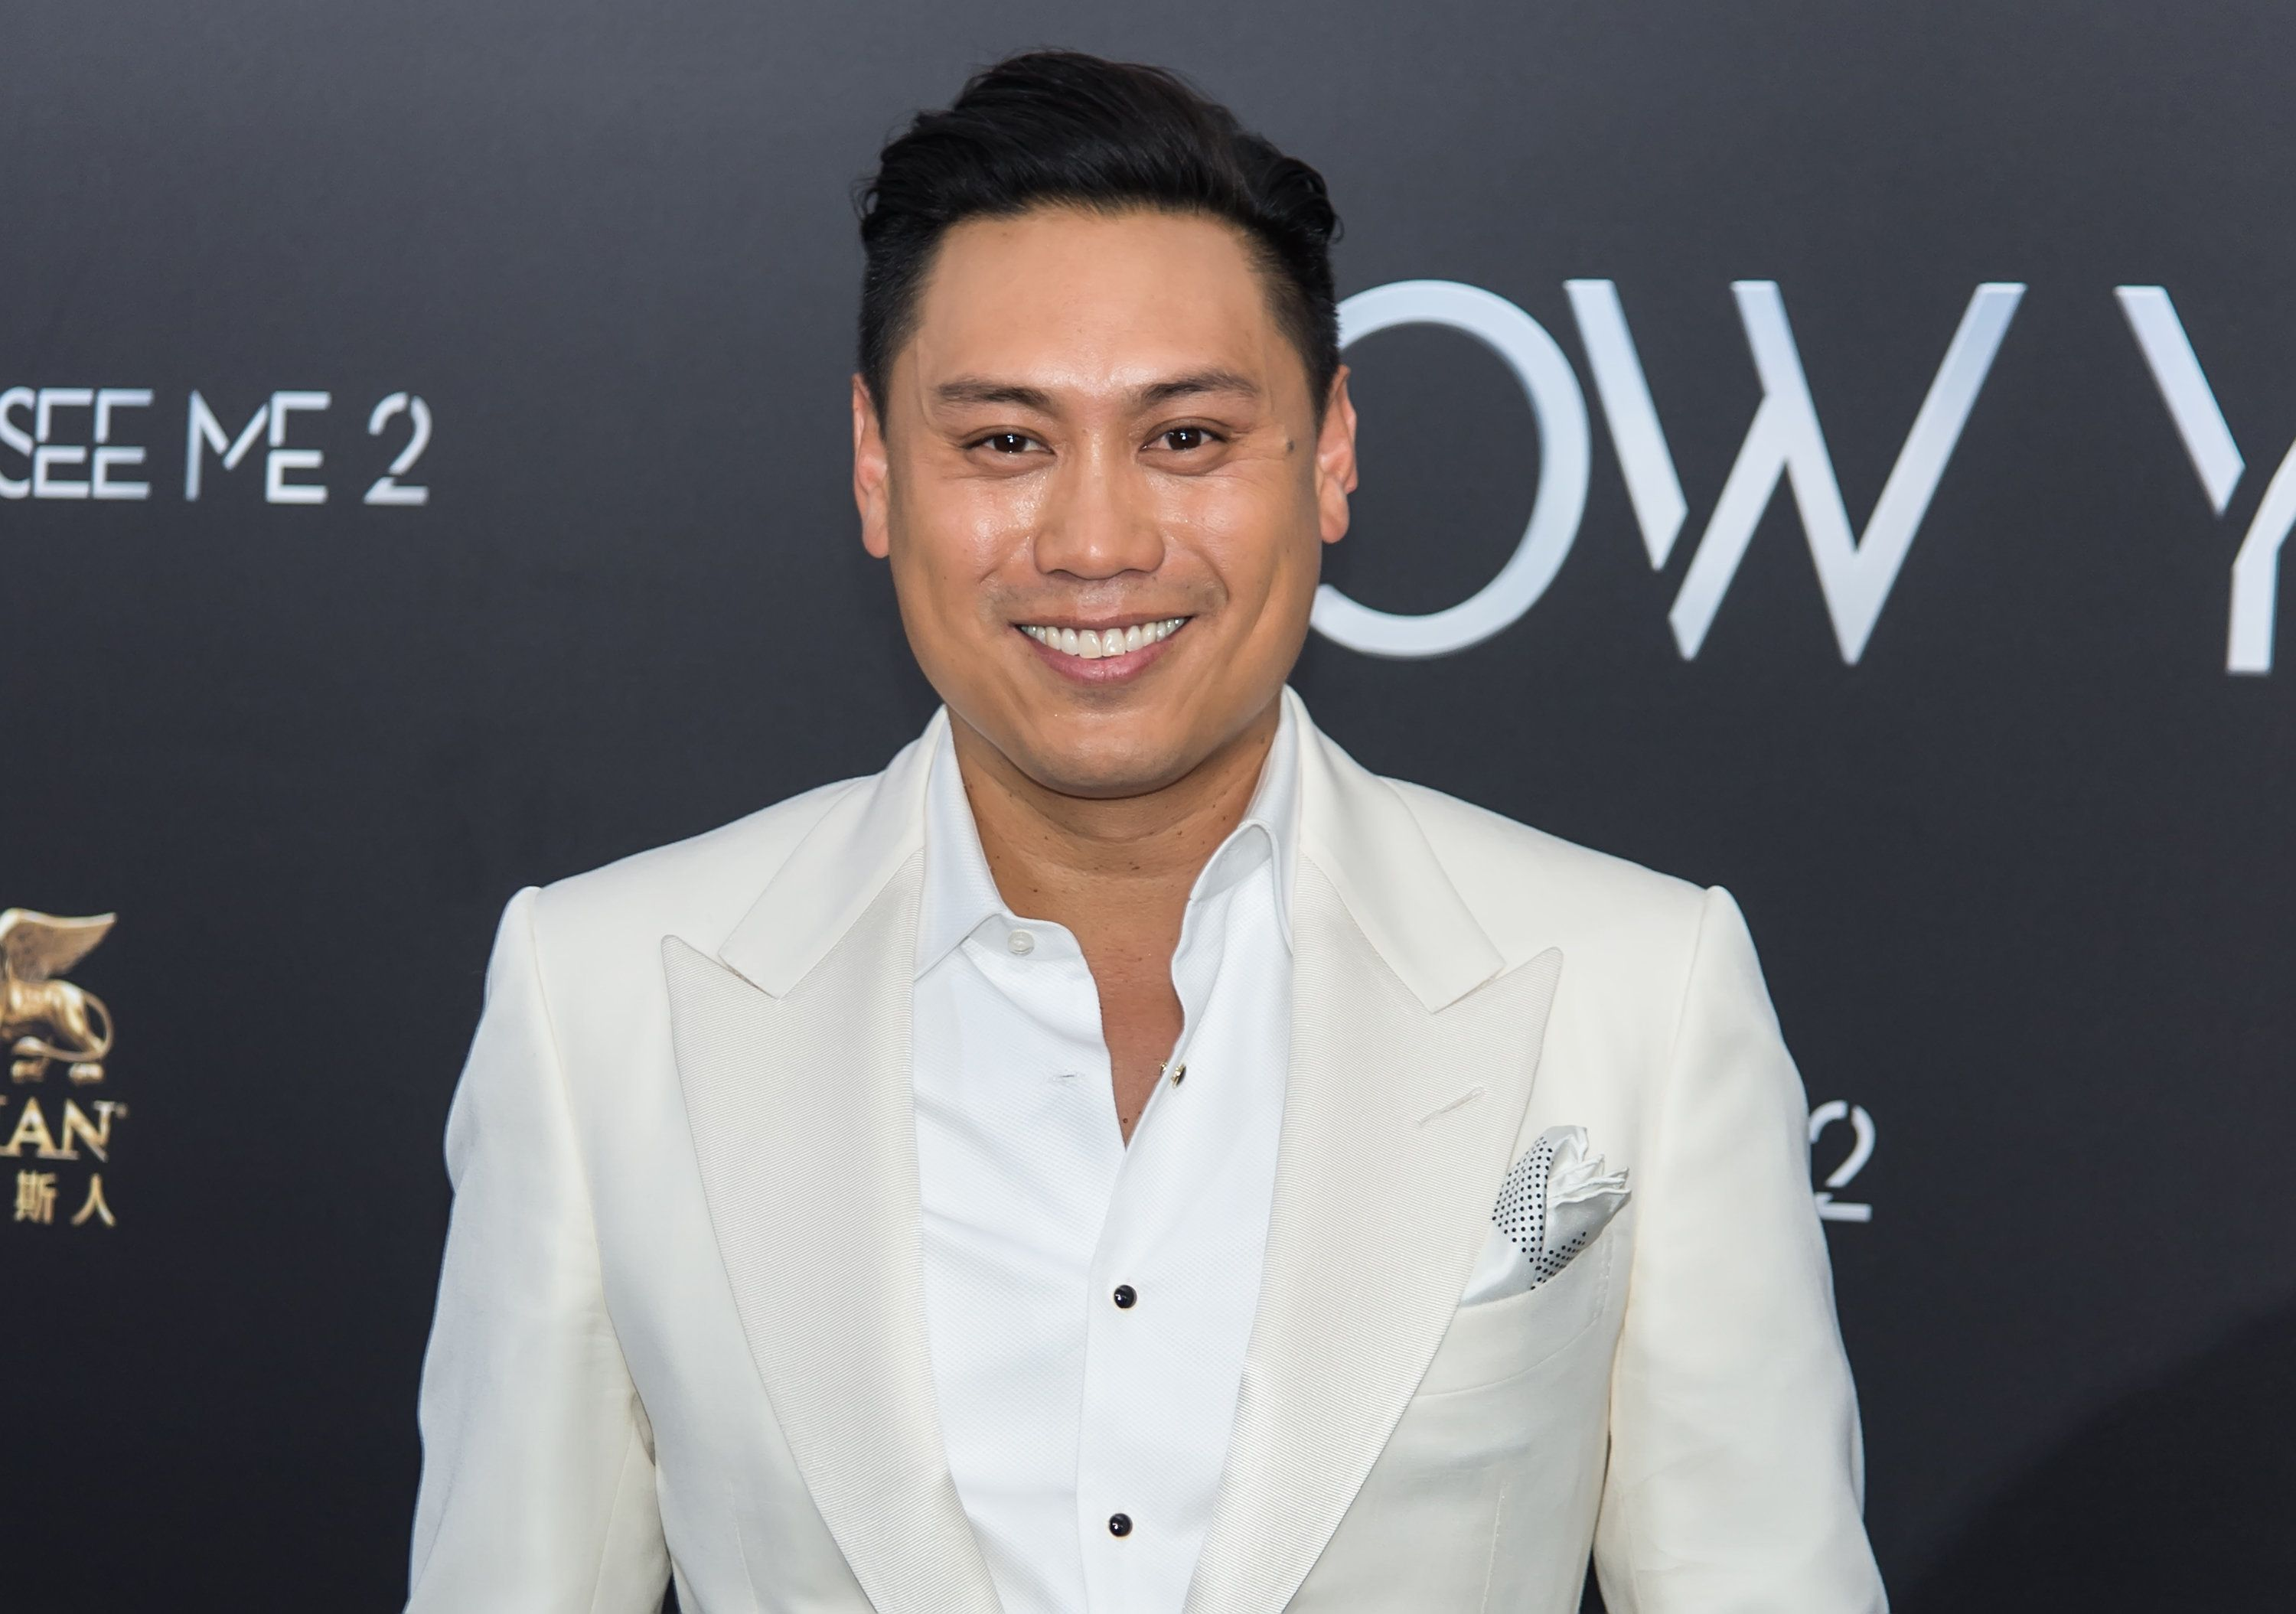 NEW YORK, NY - JUNE 06:  Director Jon M. Chu attends 'Now You See Me 2' World Premiere at AMC Loews Lincoln Square 13 theater on June 6, 2016 in New York City.  (Photo by Gilbert Carrasquillo/FilmMagic)